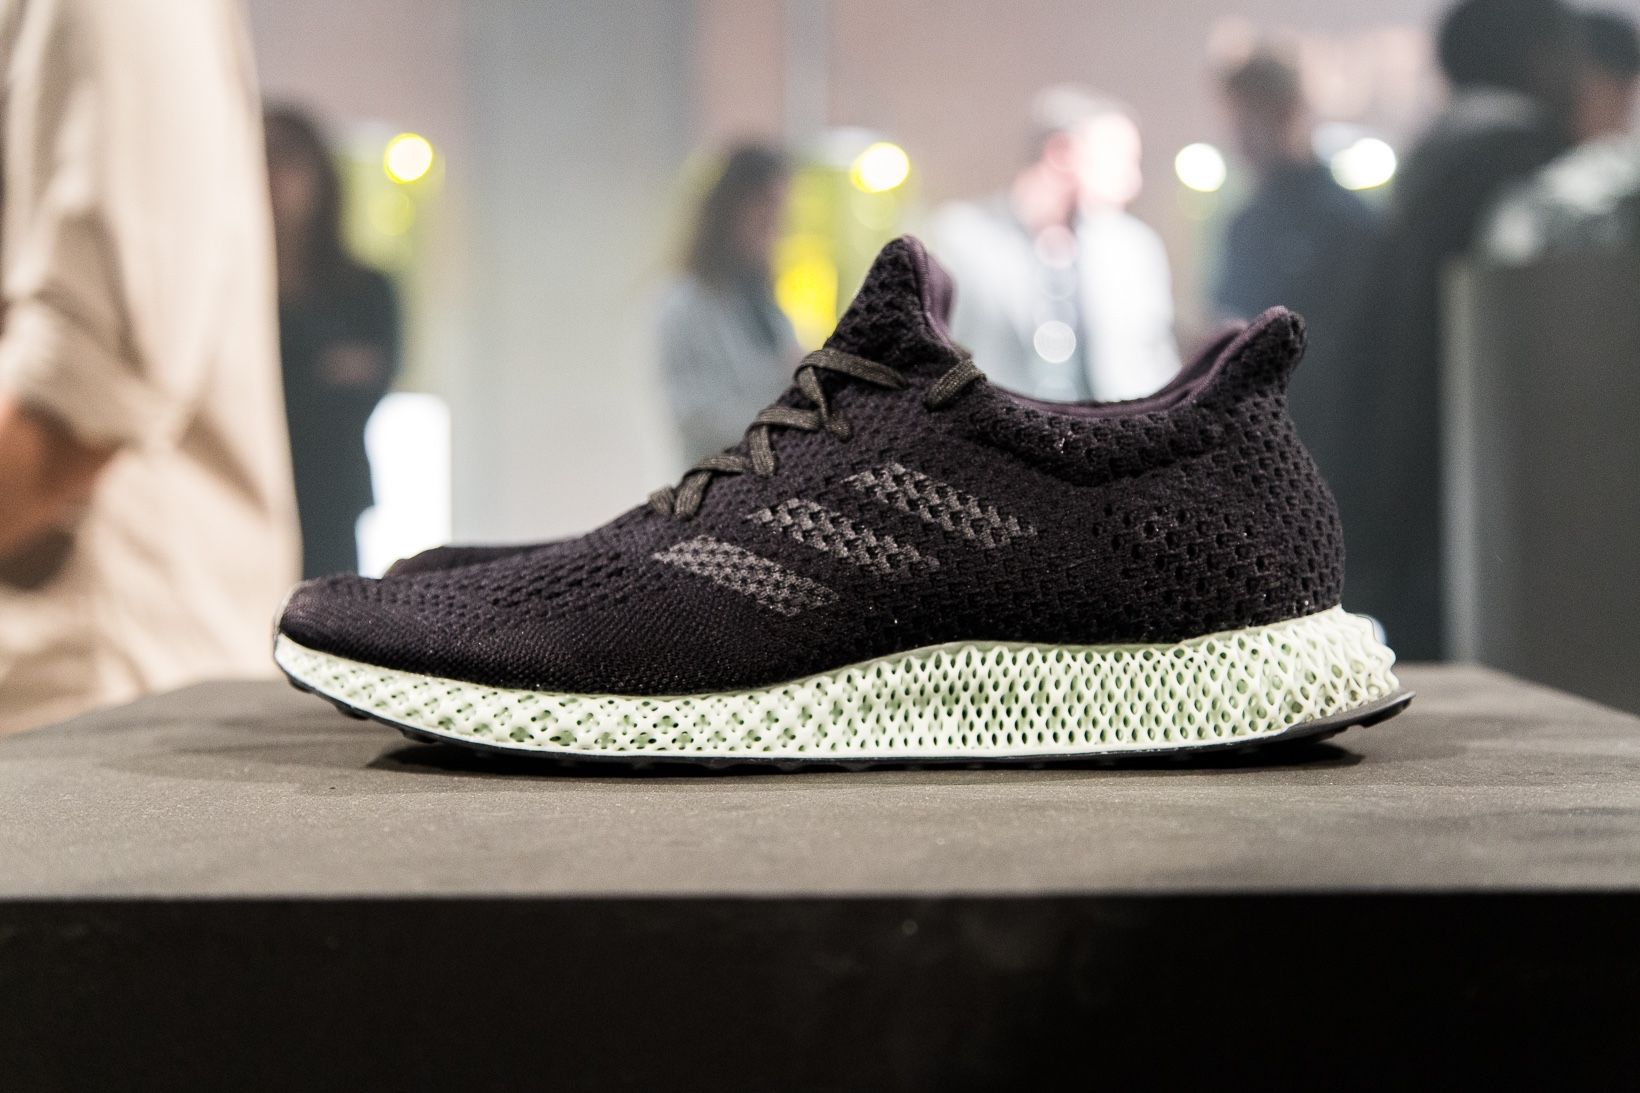 adidas Futurecraft 4D to Release in December 2017 - EU Kicks: Sneaker  Magazine